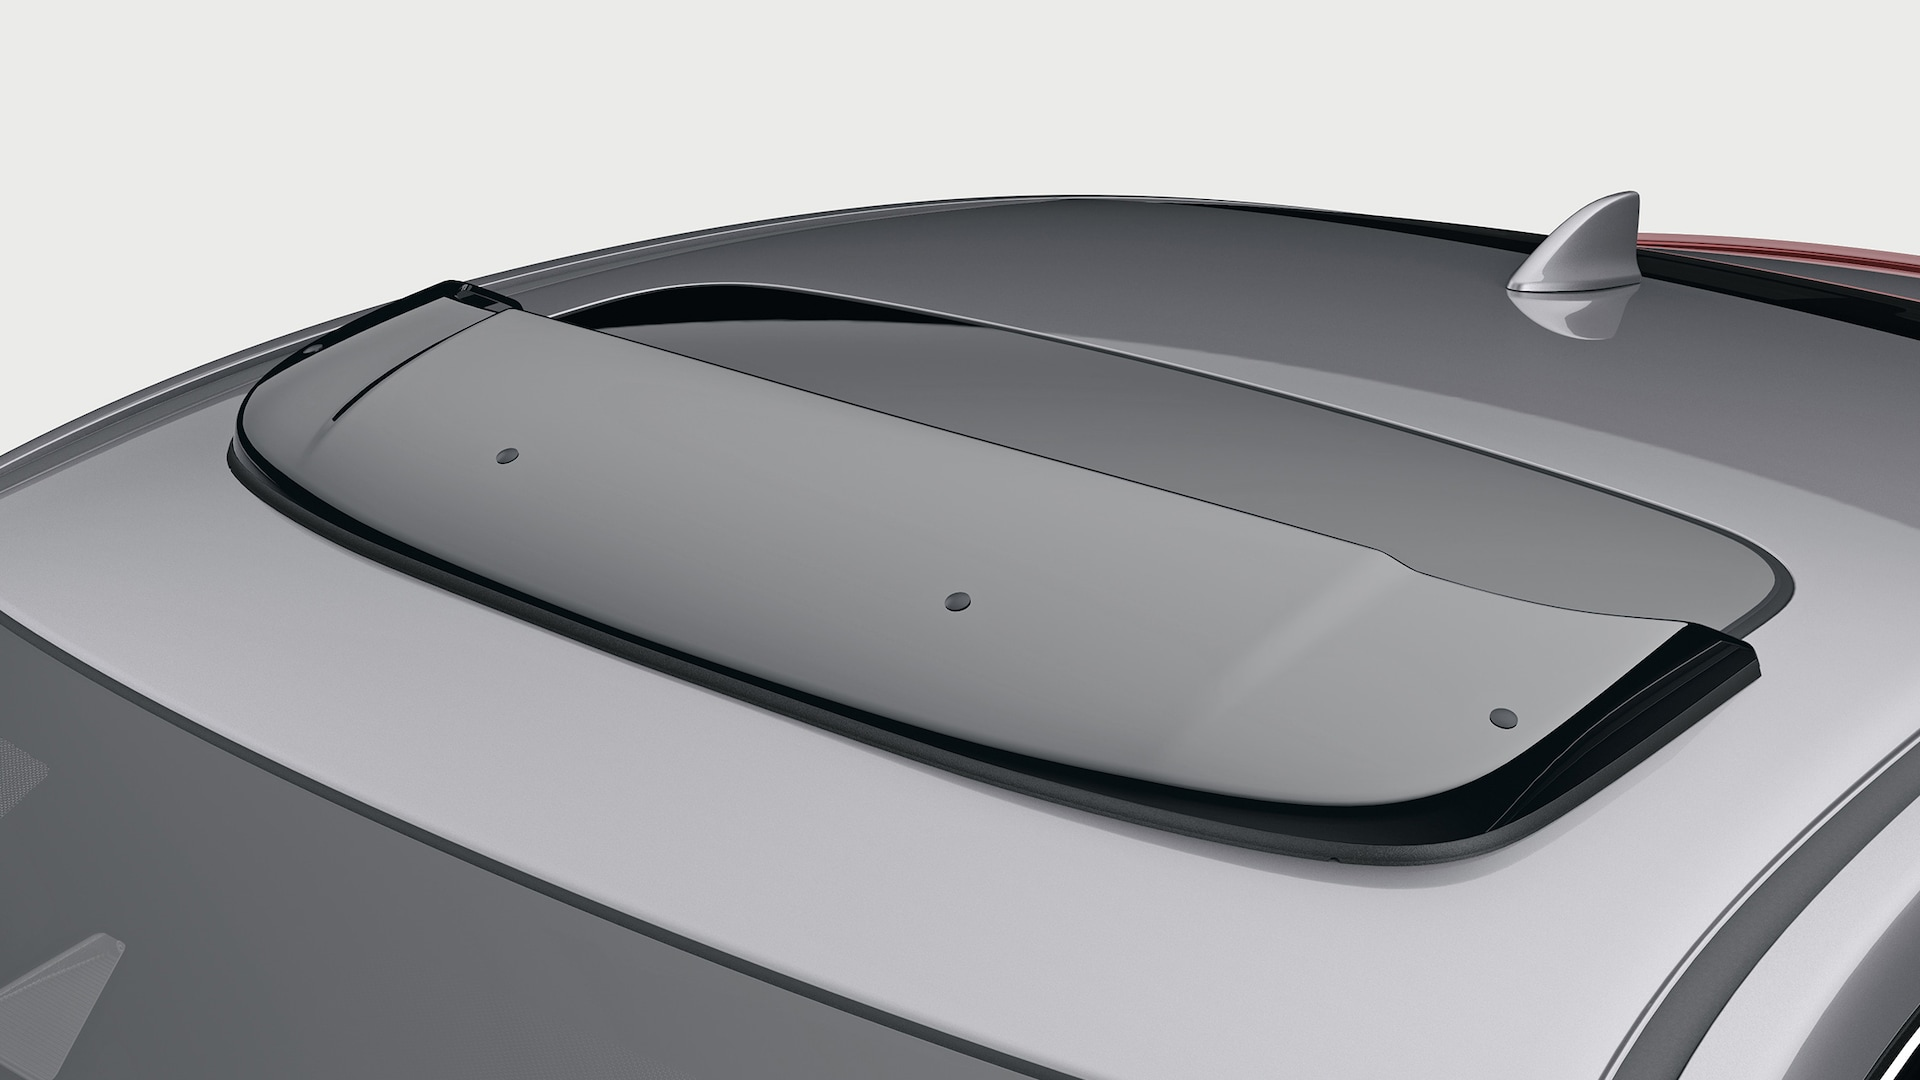 Accessory moonroof visor detail on the 2020 Honda Civic Coupe in Modern Steel Metallic.